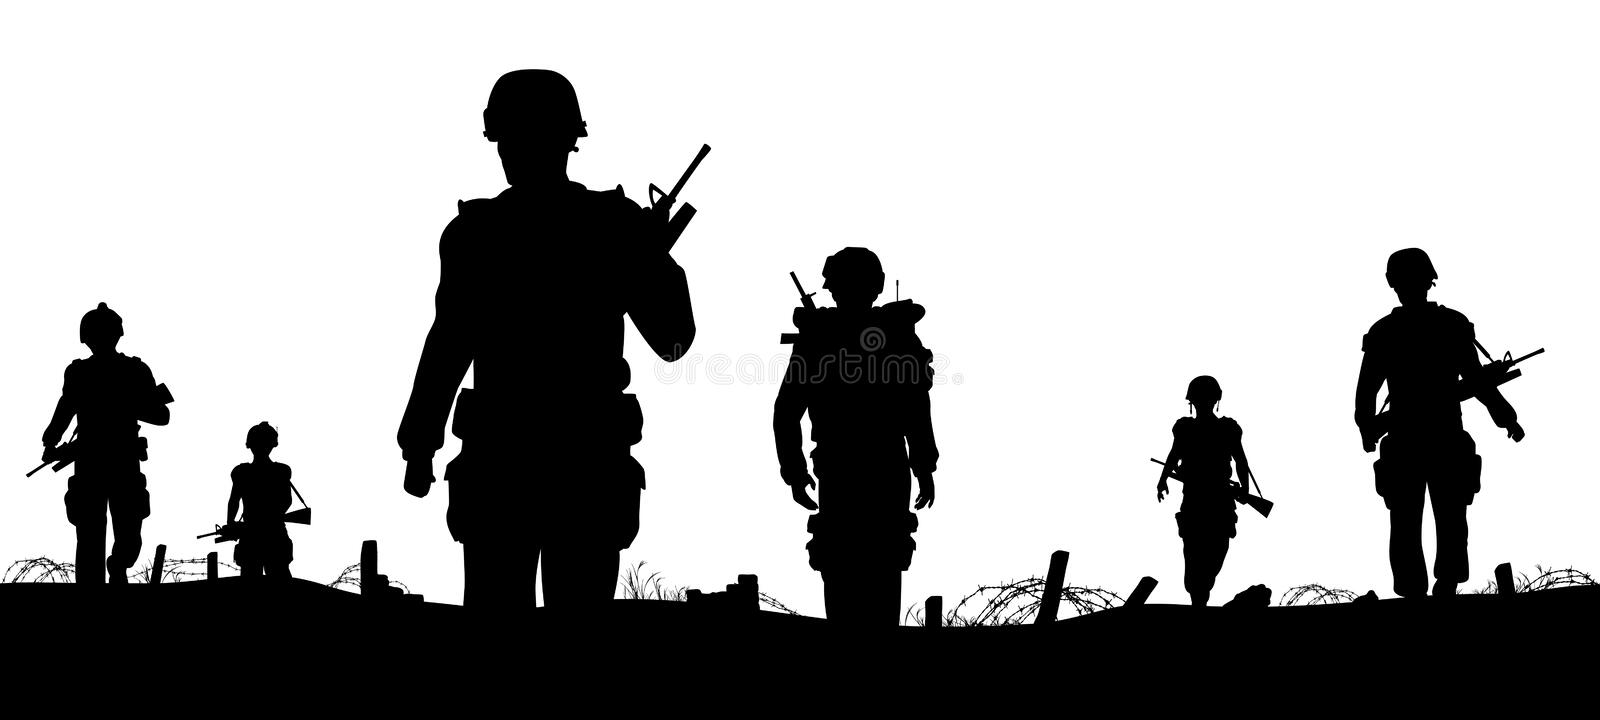 Troops foreground. Editable vector foreground of silhouettes of walking soldiers on patrol with figures as separate elements